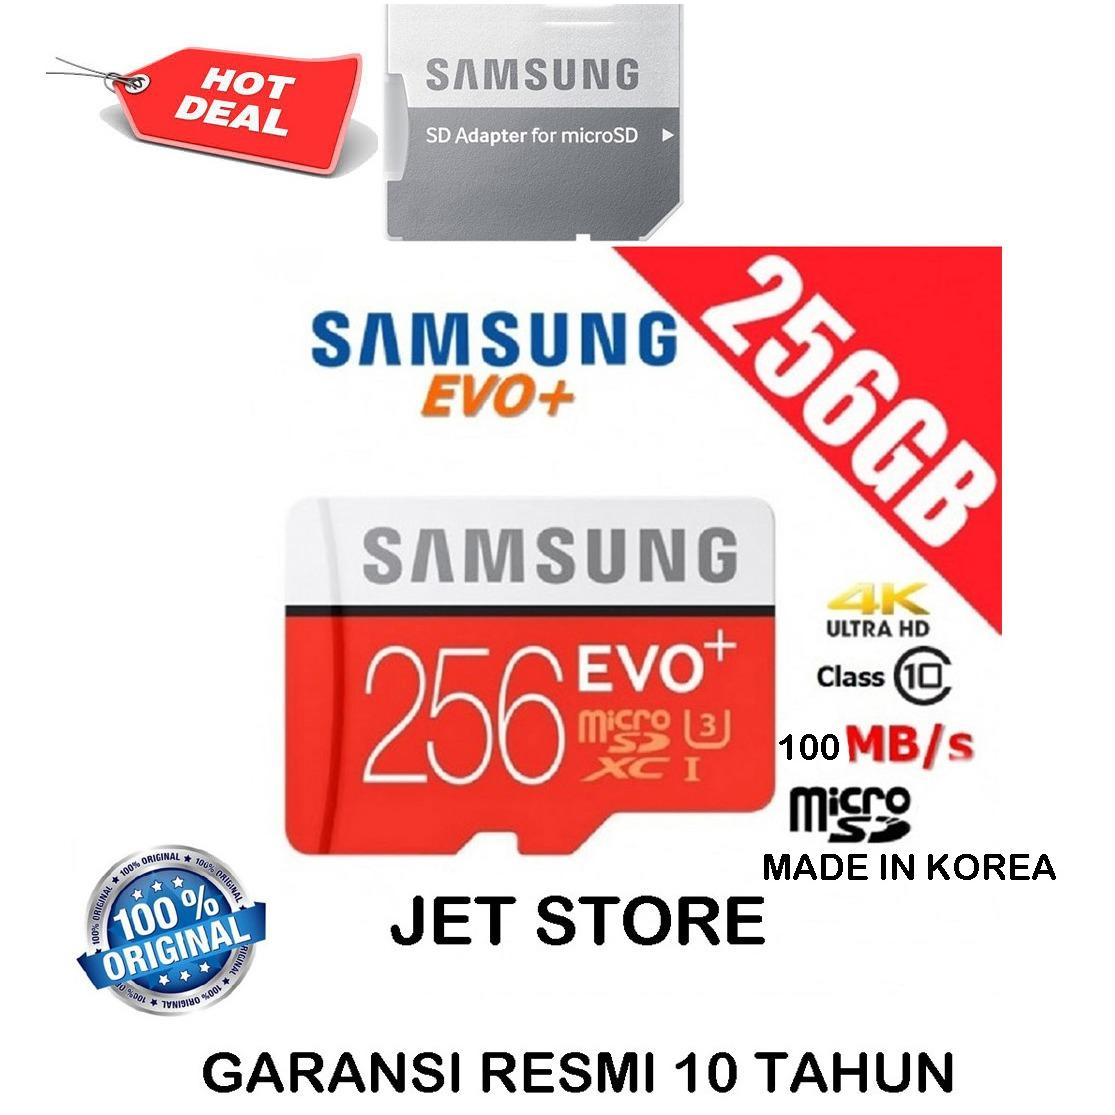 Diskon Samsung Memory Card Microsdxc Evo Plus 256Gb 100Mb S With Adapter Merah Branded